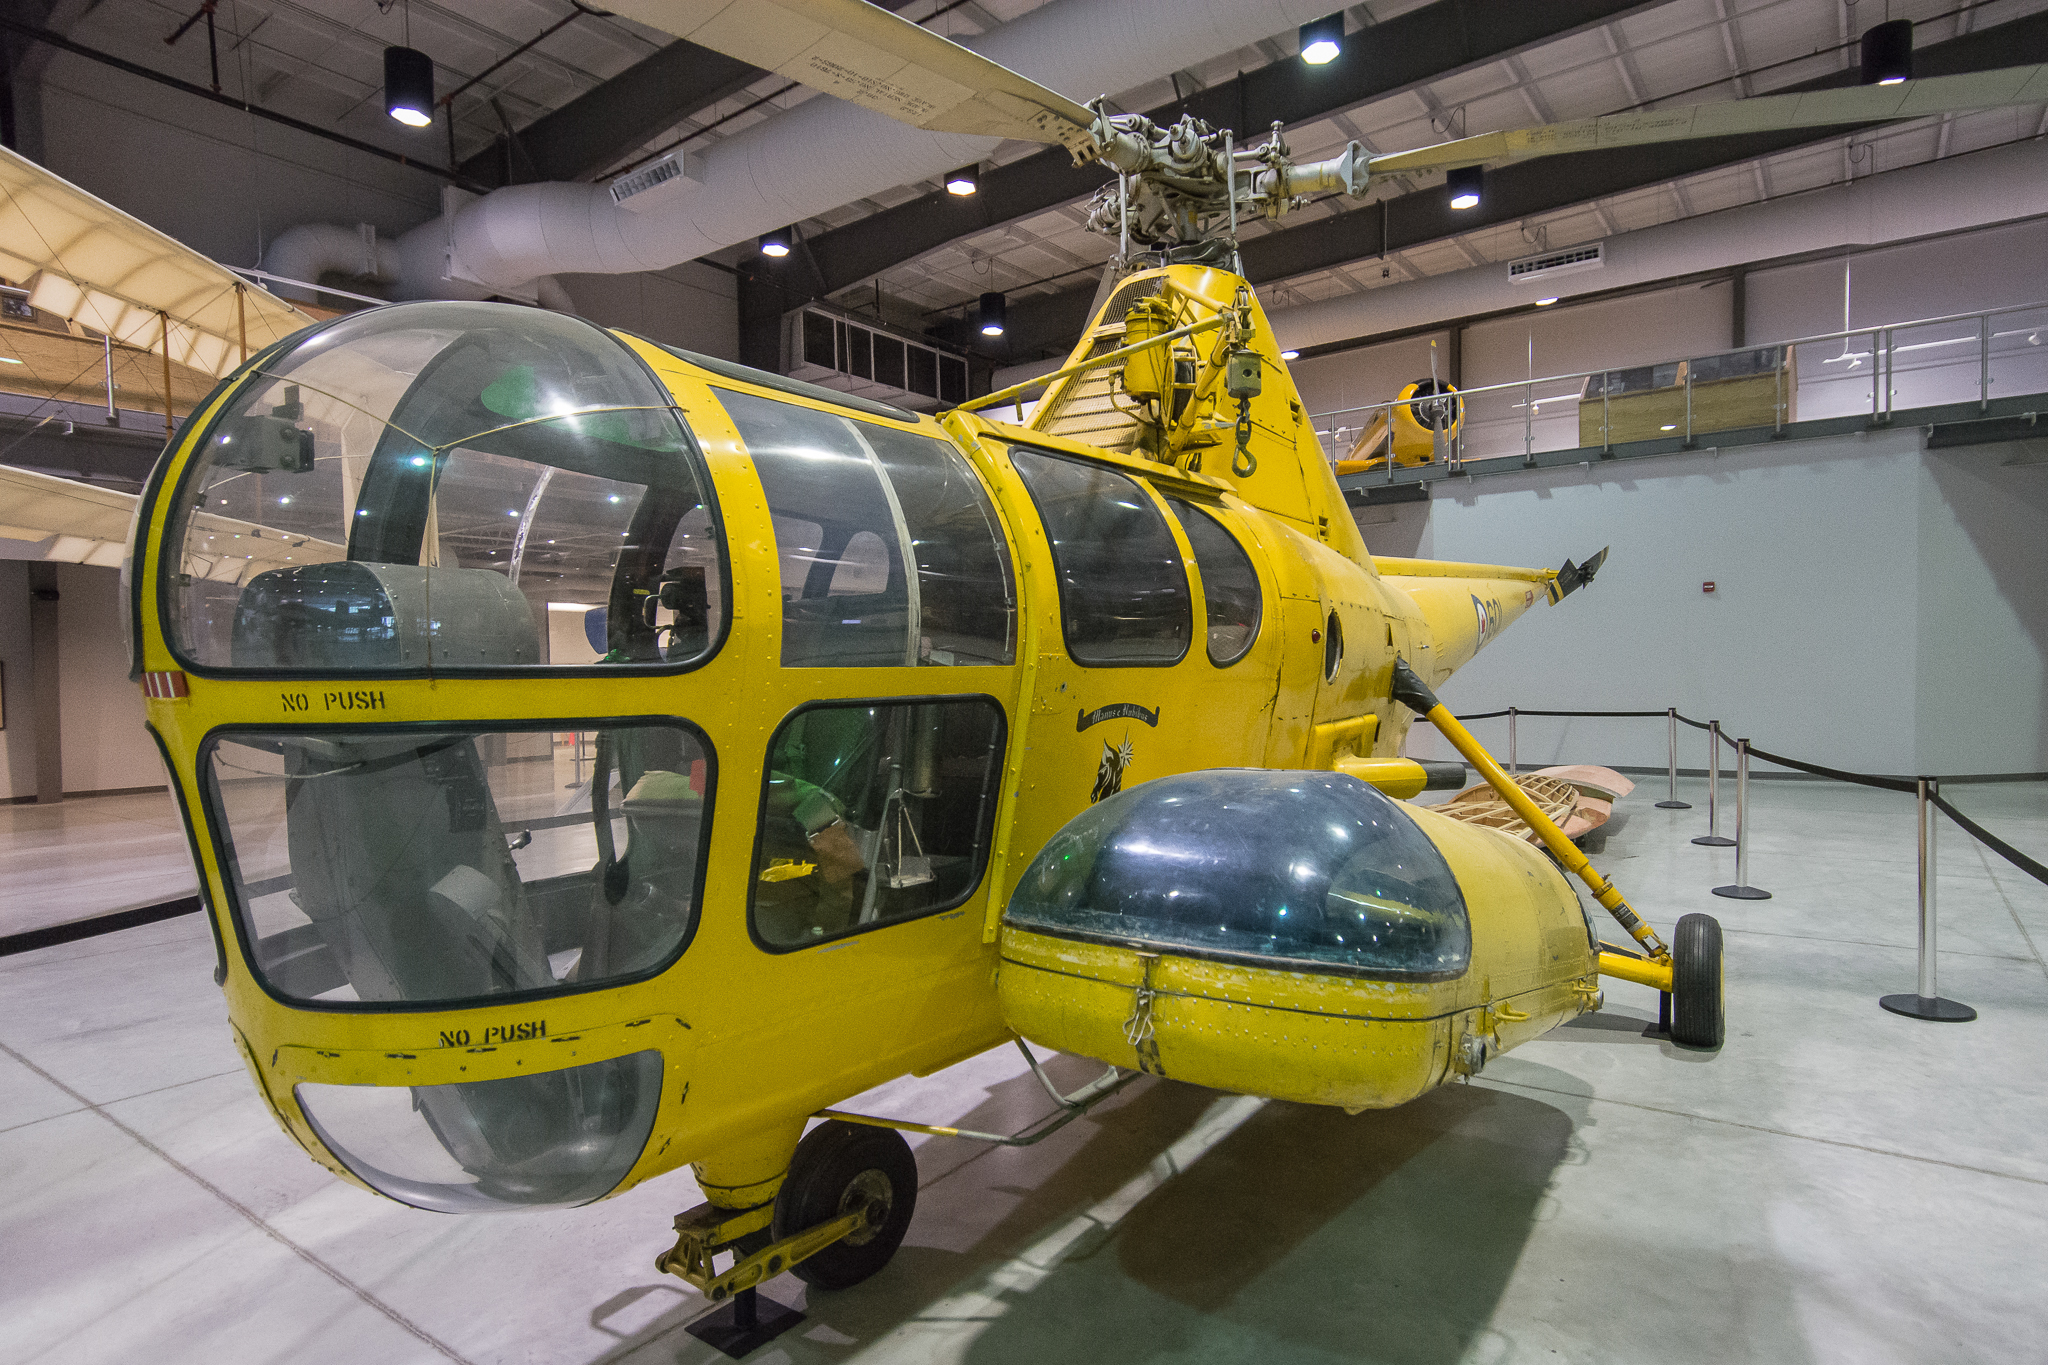 Sikorsky H-5 (1/125s, f/4, ISO3200)